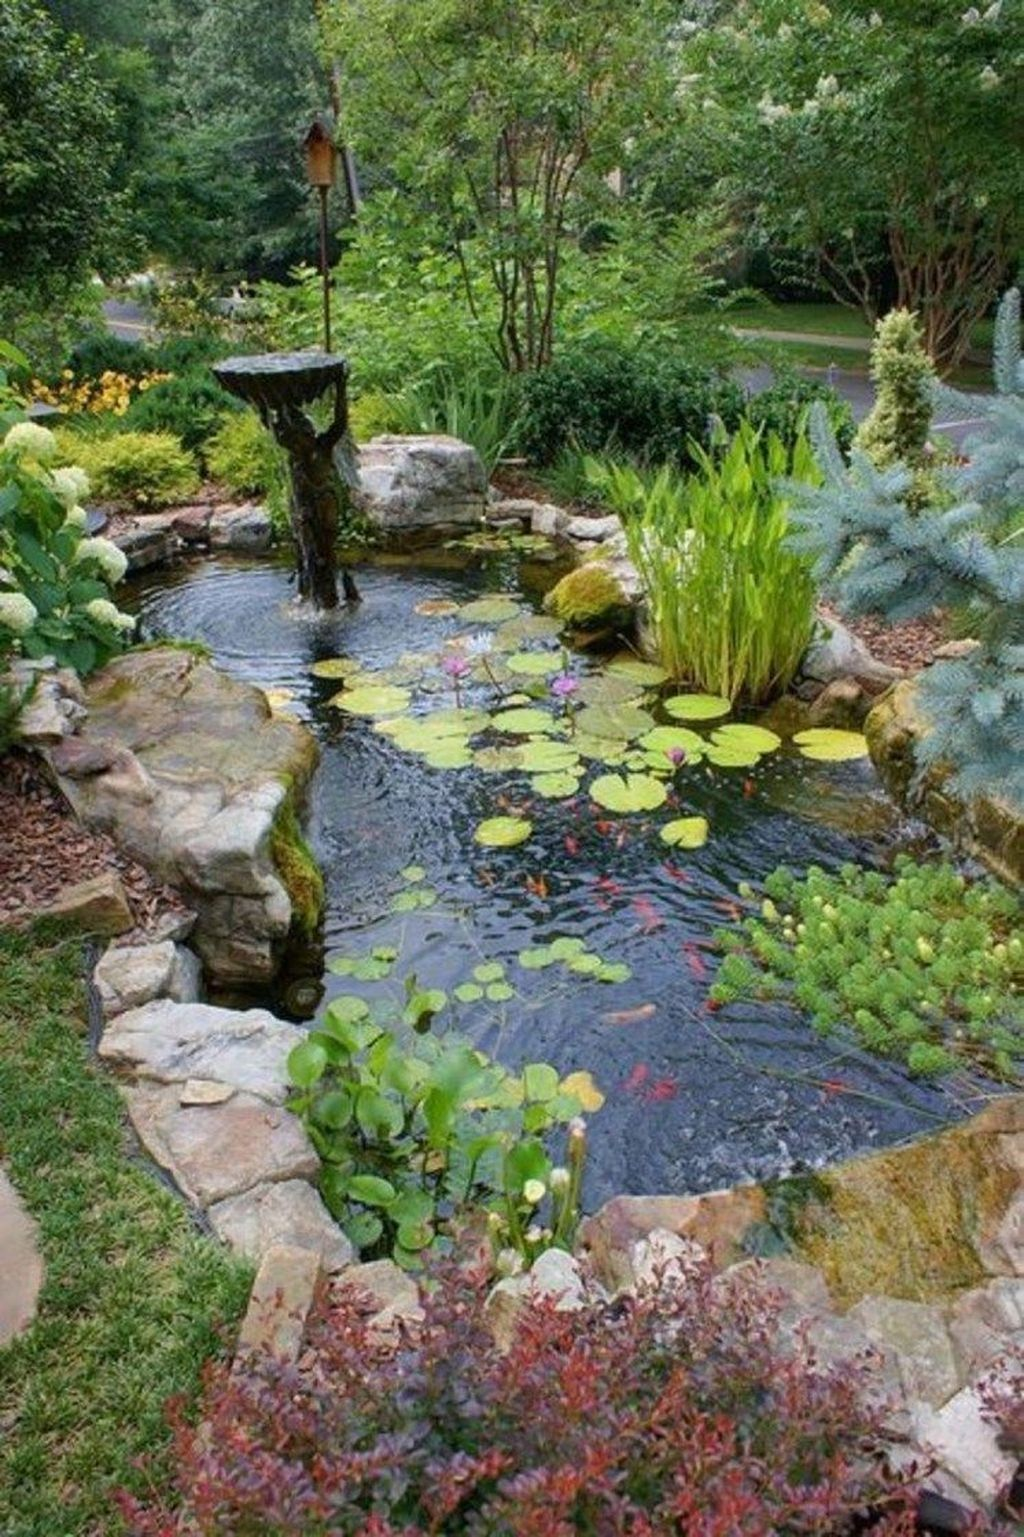 Pond Landscaping In 2020 Small Water Gardens Garden Pond Design